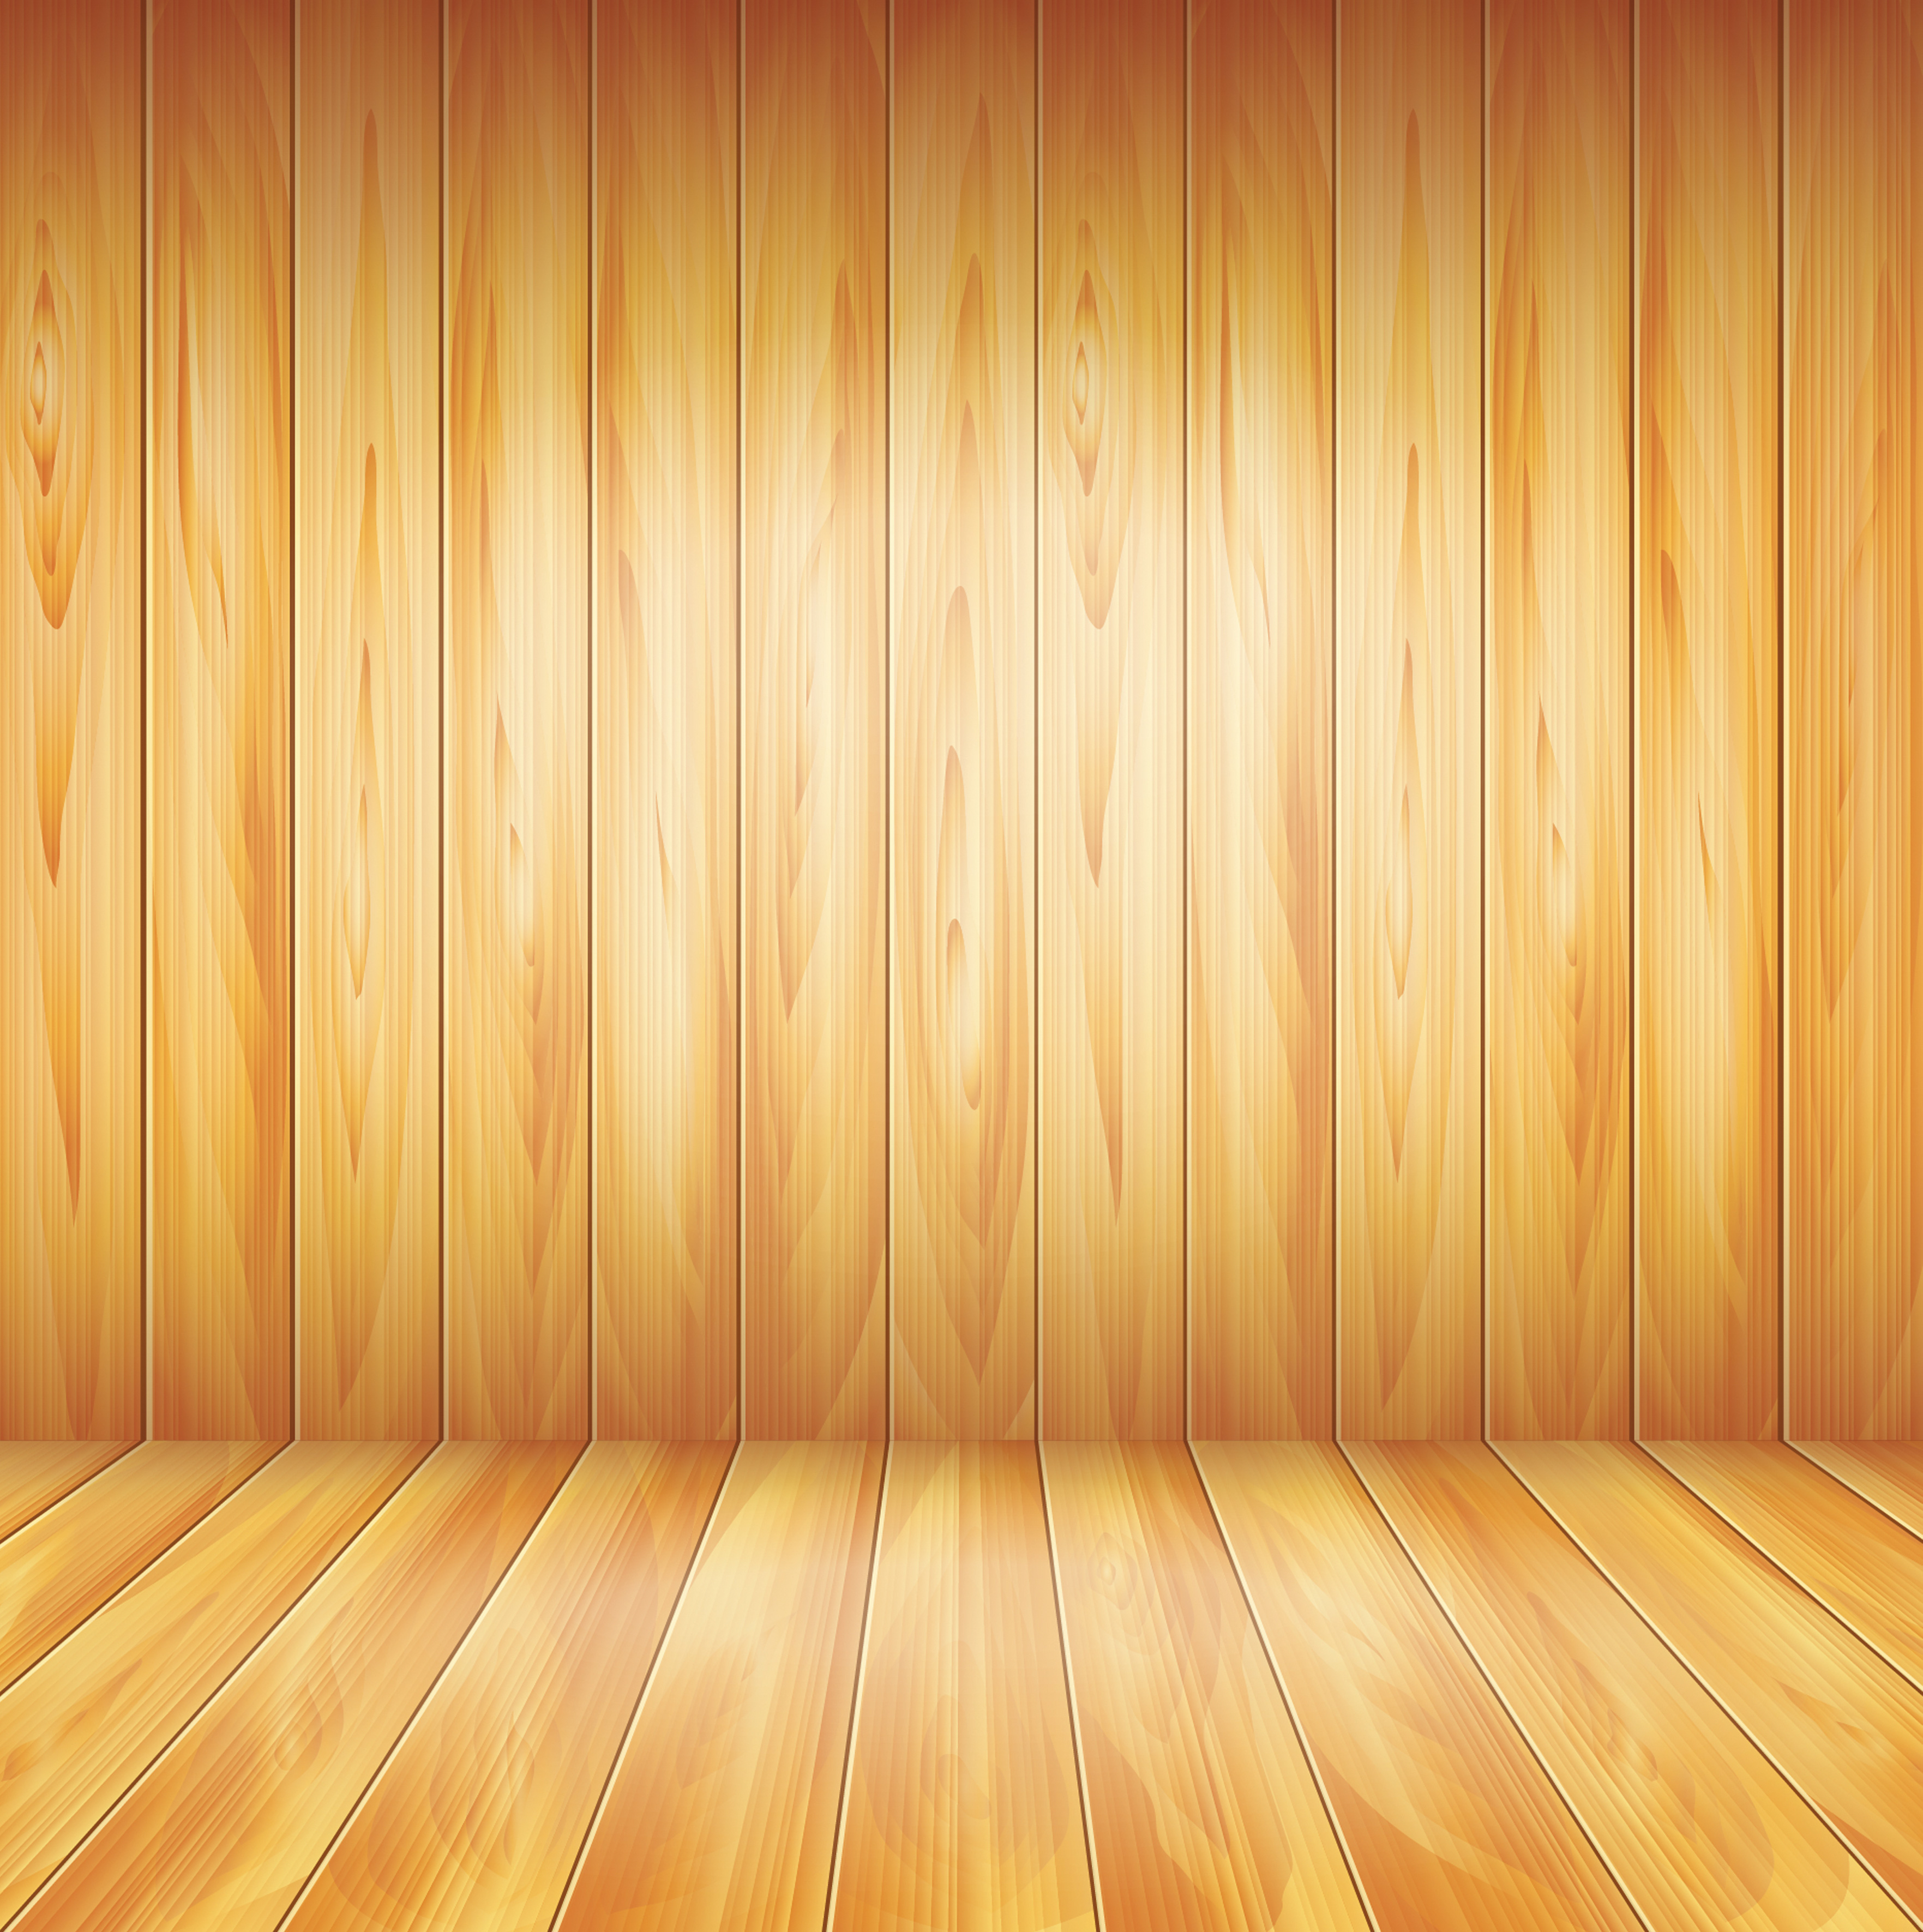 Wooden_Wall_and_Flor_Background.jpg?m=1399676400.